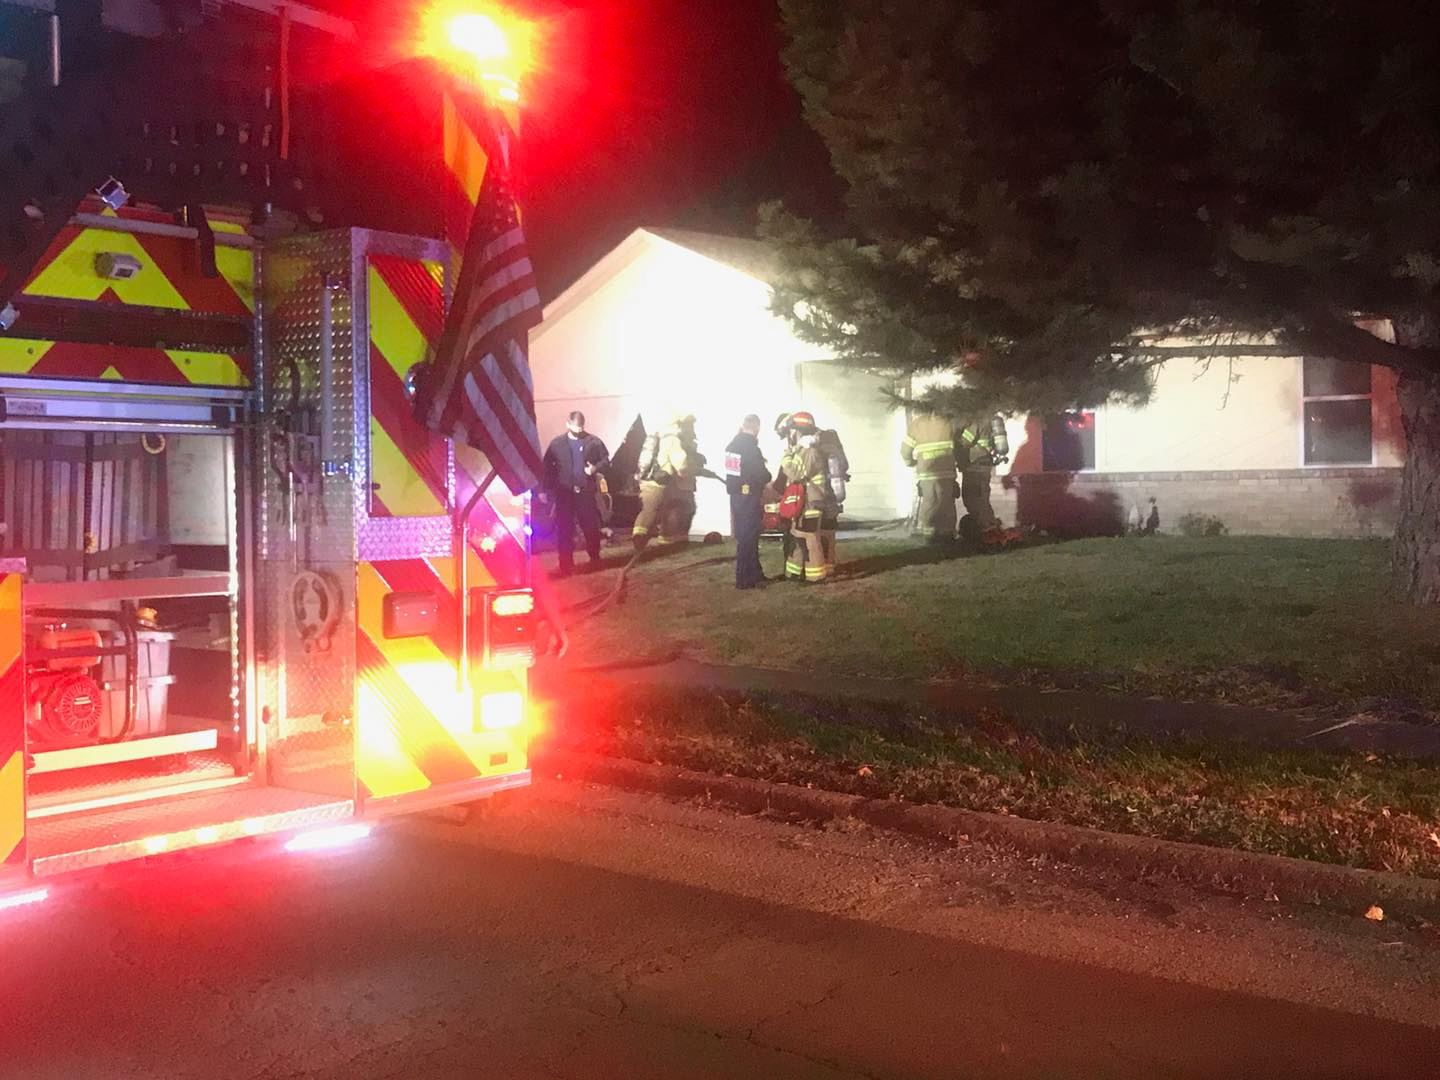 Owasso Fire/Explosion Kills One – Injures Two Firefighters